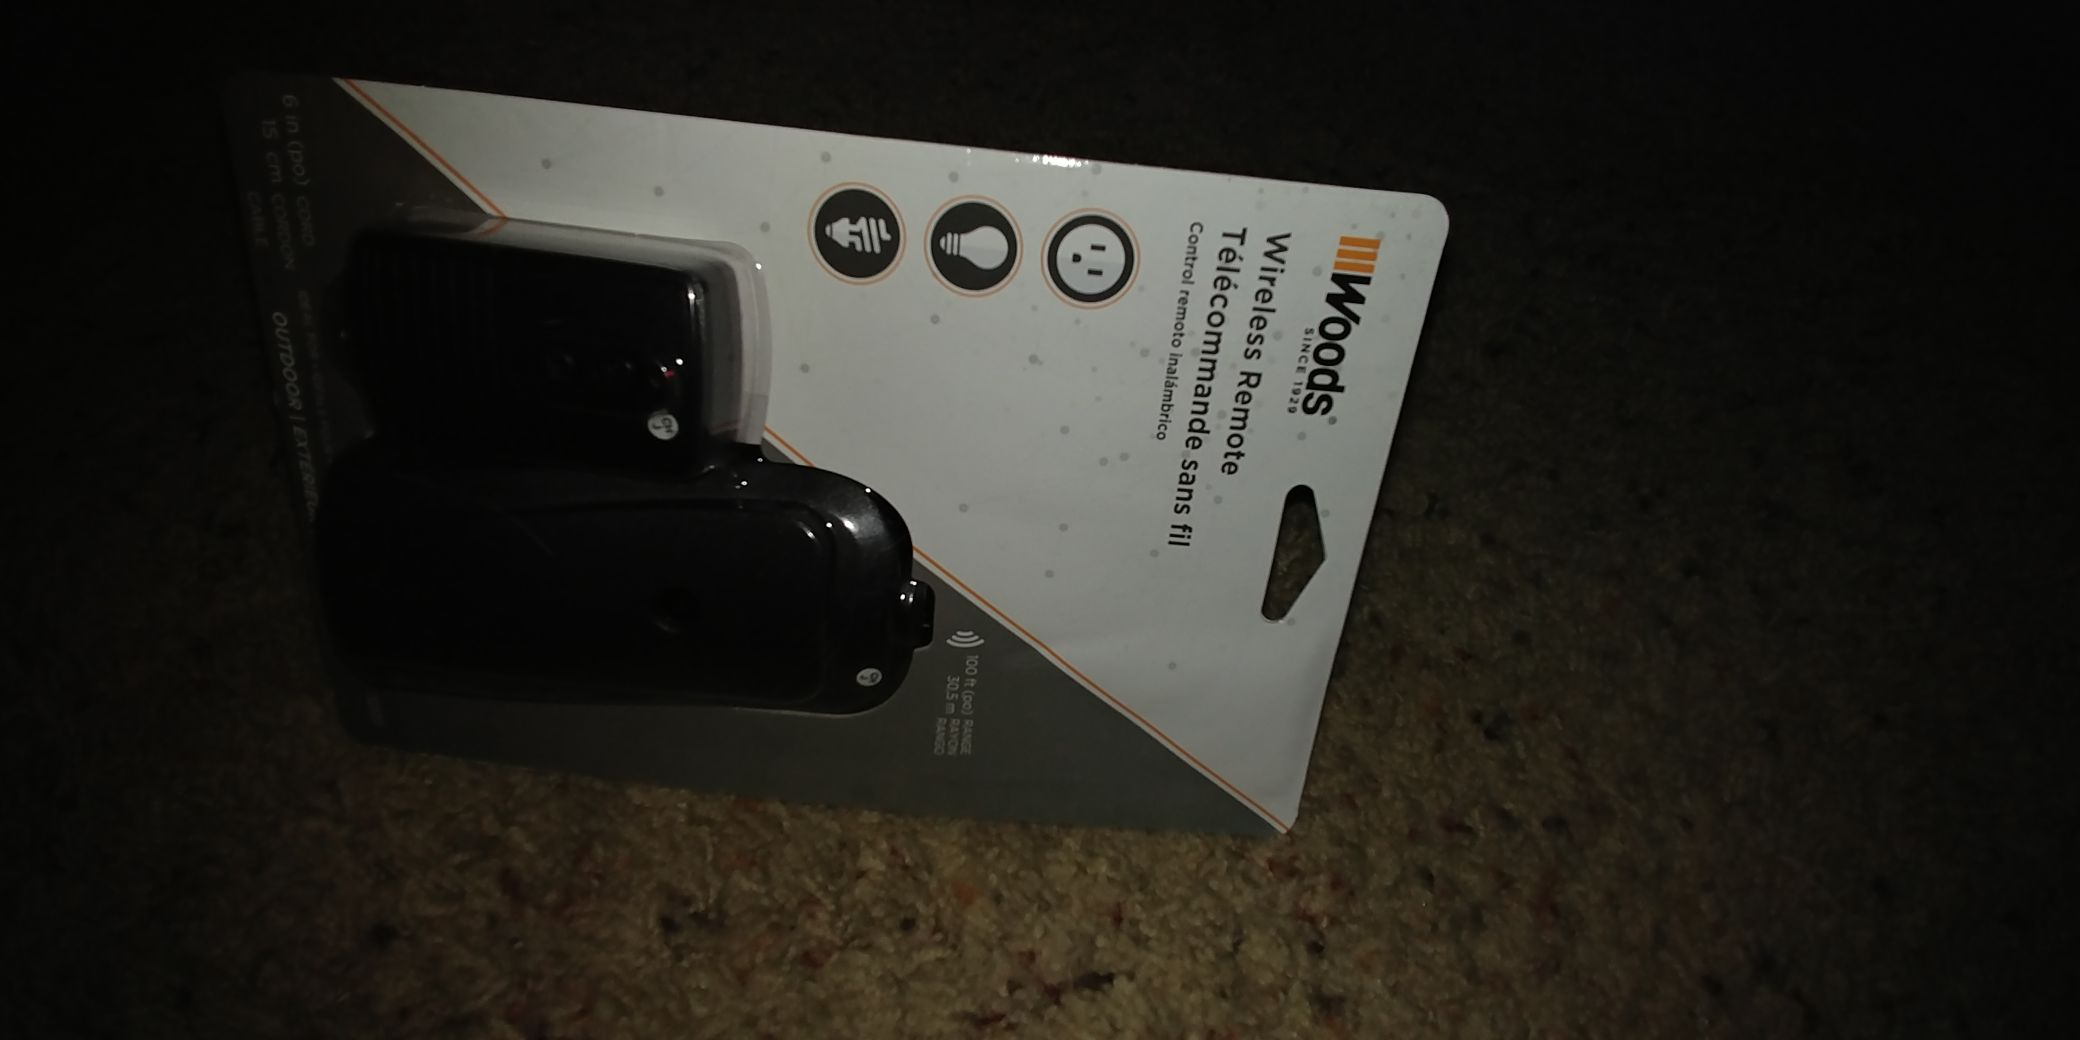 Wireless Remote Ornament - Woods (2018) front image (front cover)